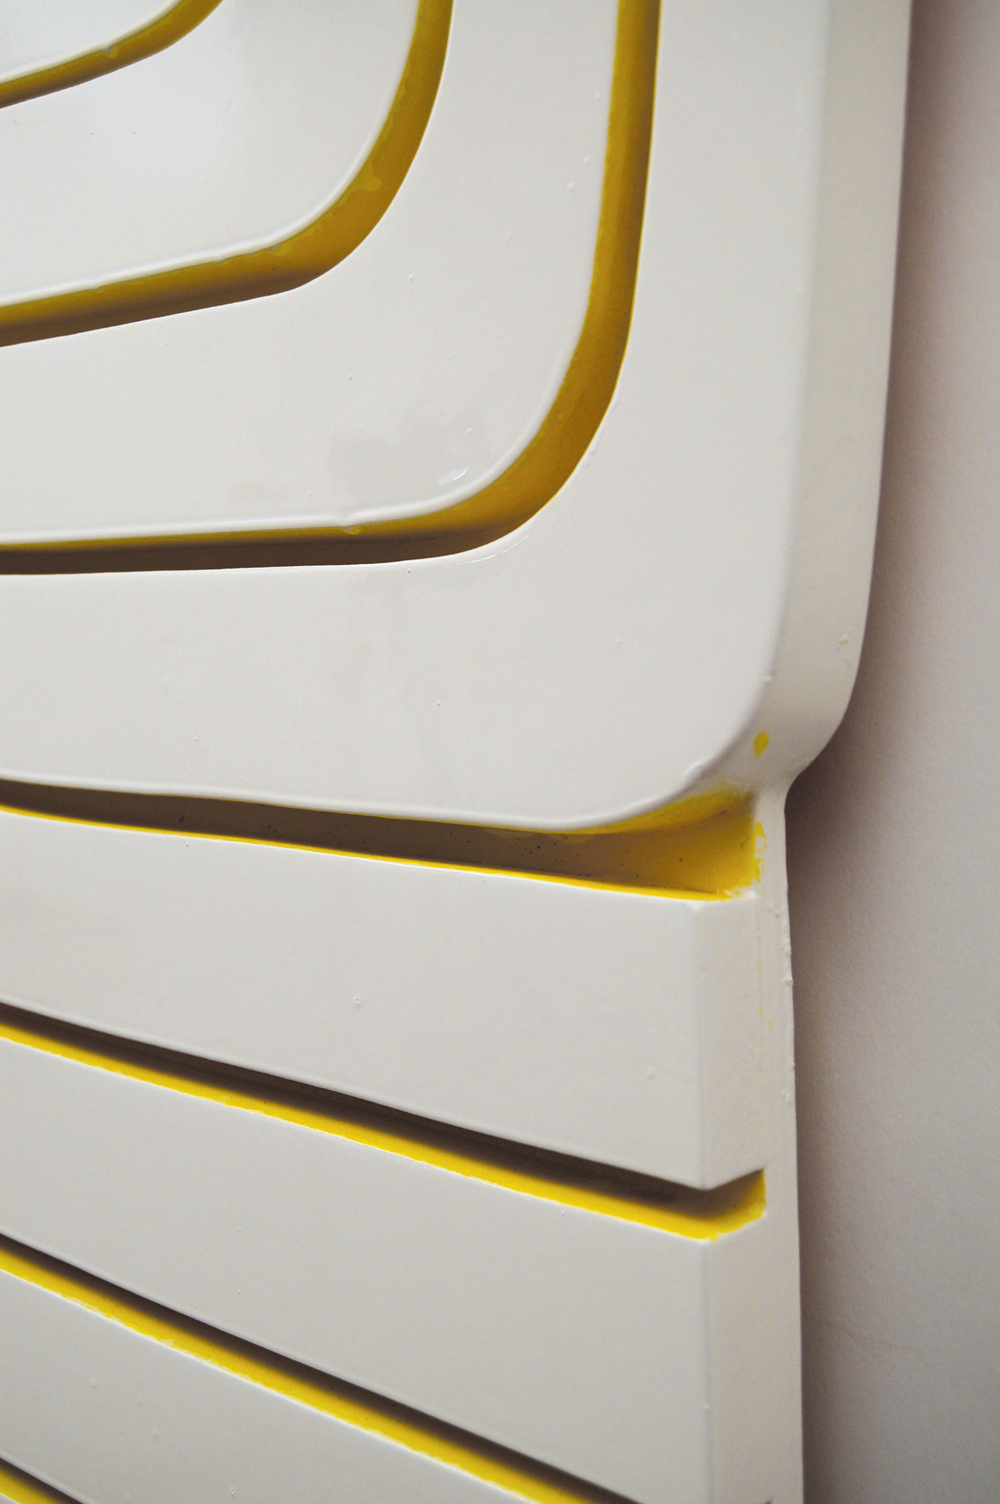 Yellow Groove, 2014  (detail)  52.5 x 40 inches  enamel and acrylic paint on wood